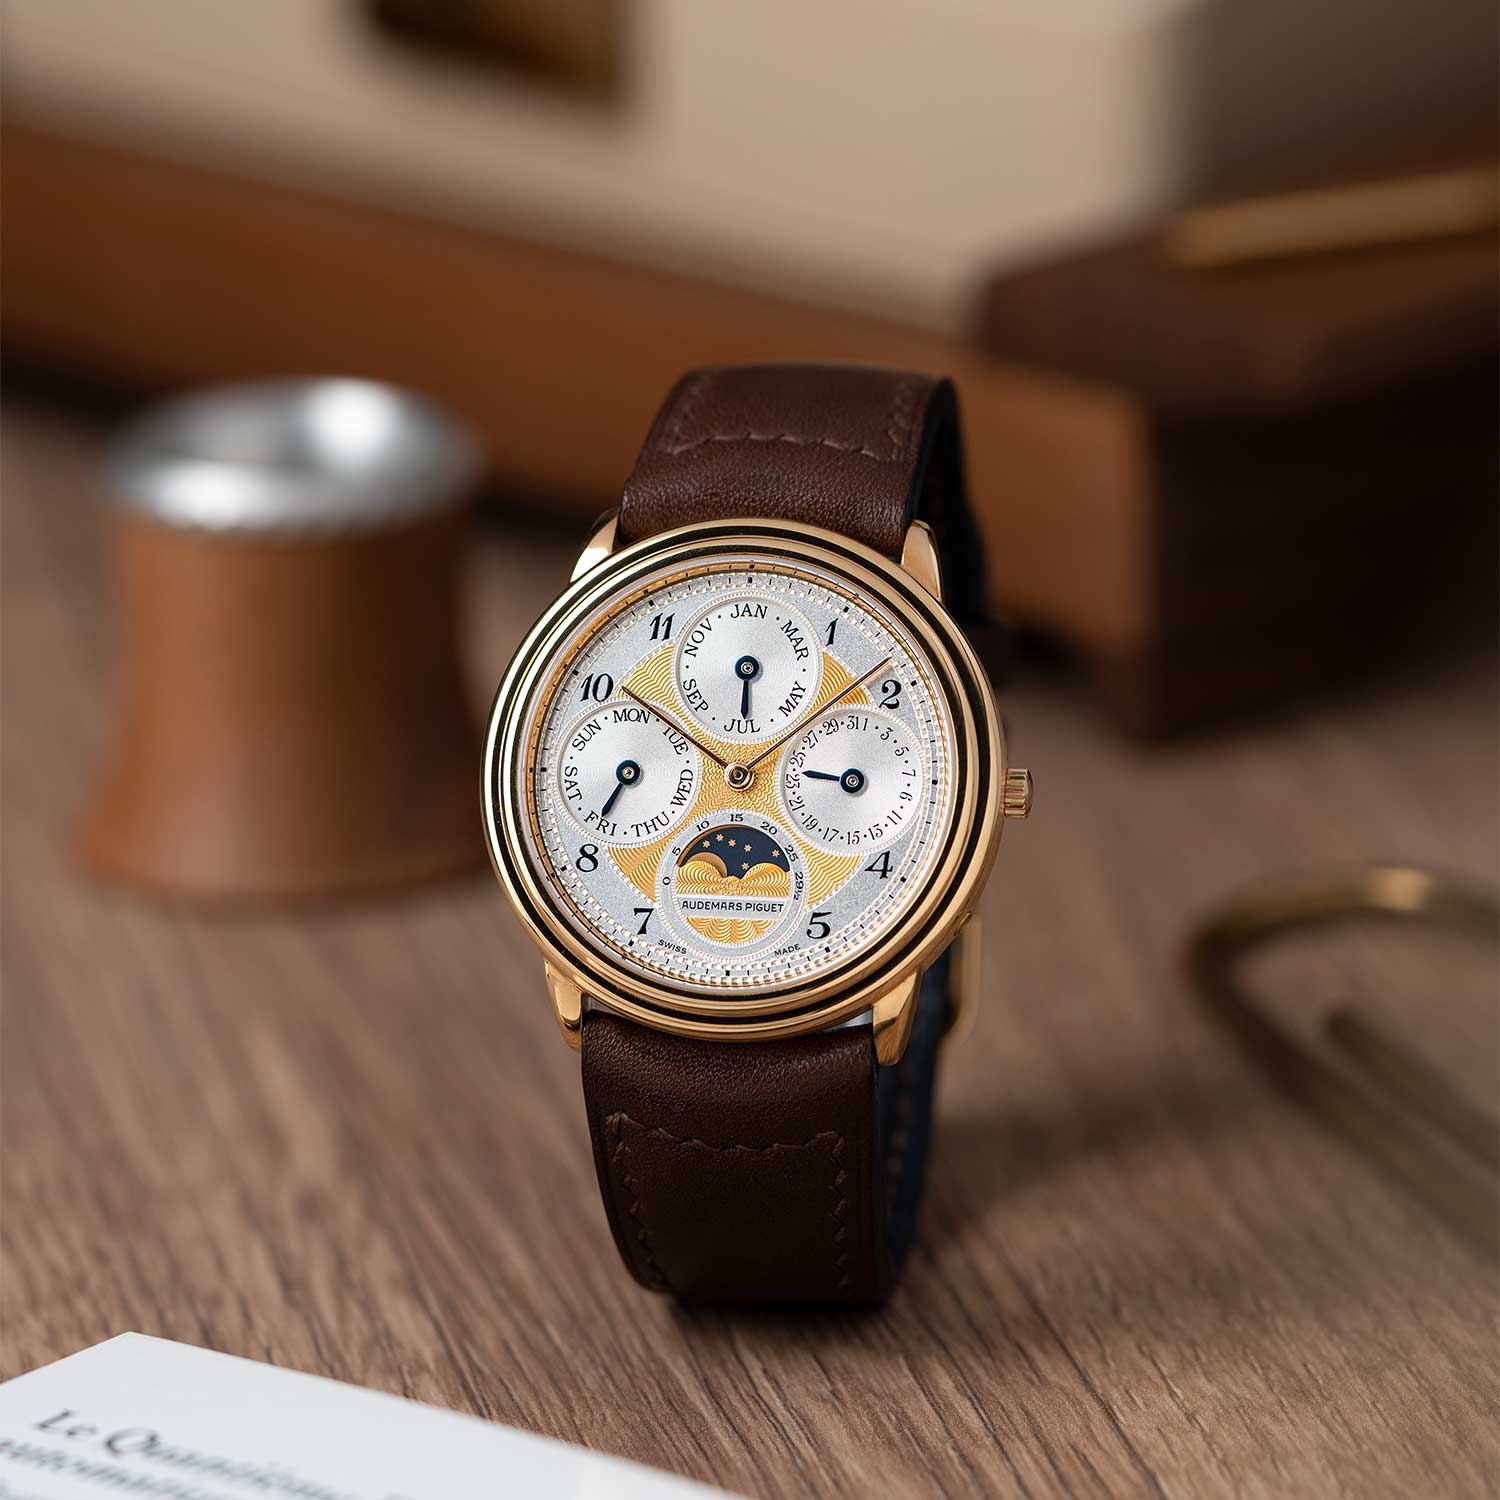 Perpetual calendar with an engine-turned dial ref. 25657BA; the watch seen here is presently part of the Pygmalion Gallery's private collection (Image: Photo and watch, property of Pygmalion Gallery)